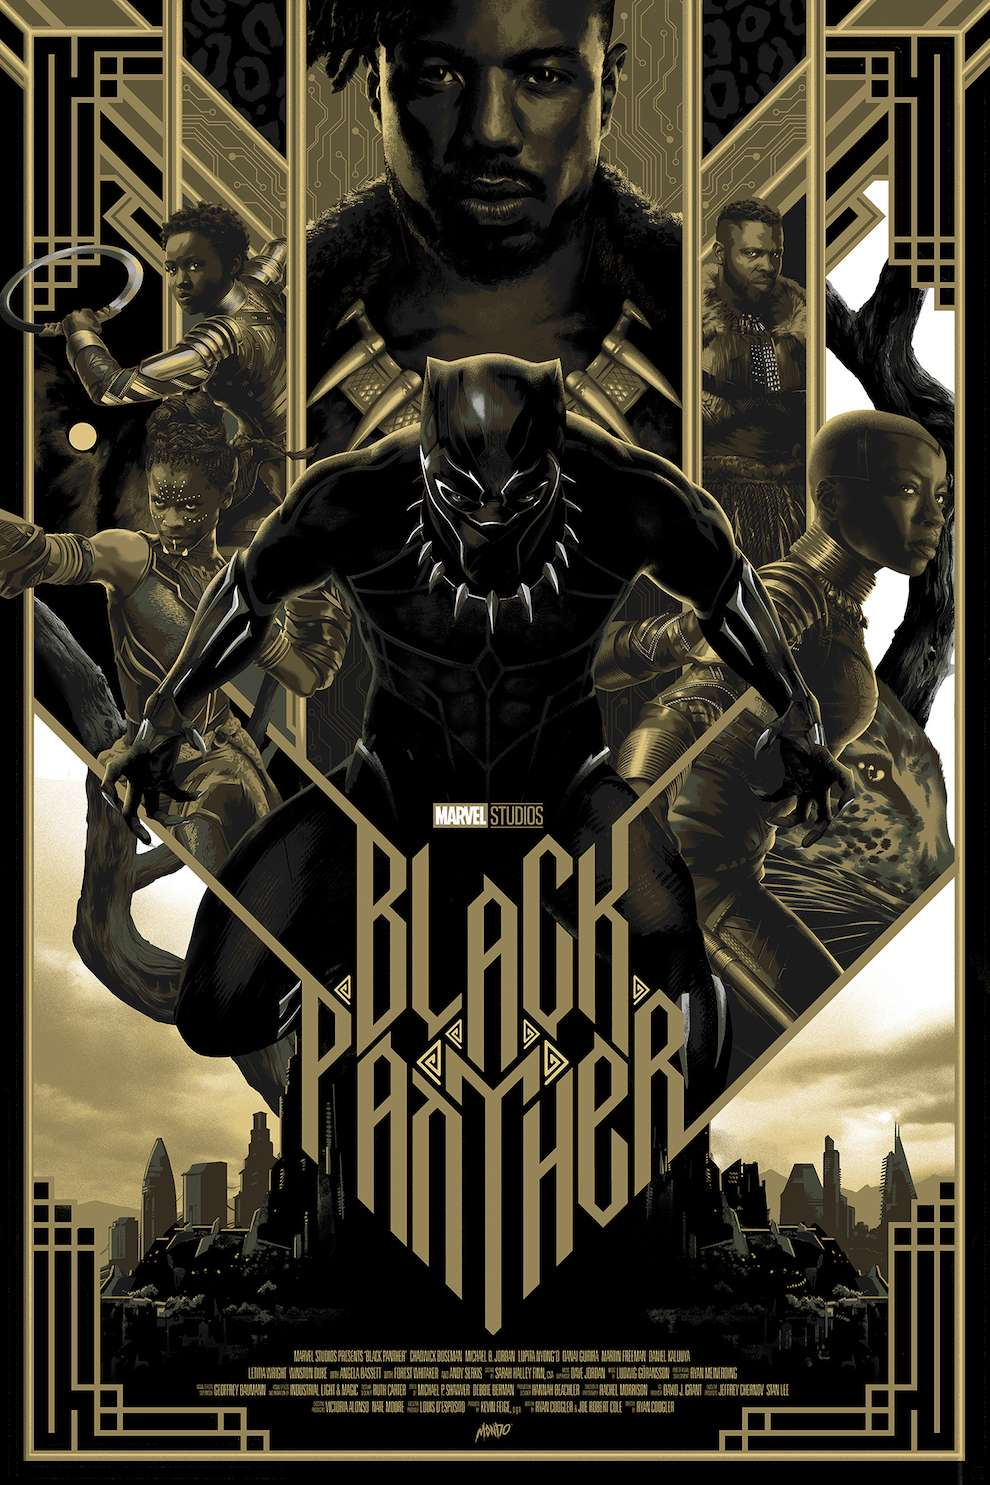 Matt Taylor, Digital & textural illustration of Black Panther film poster